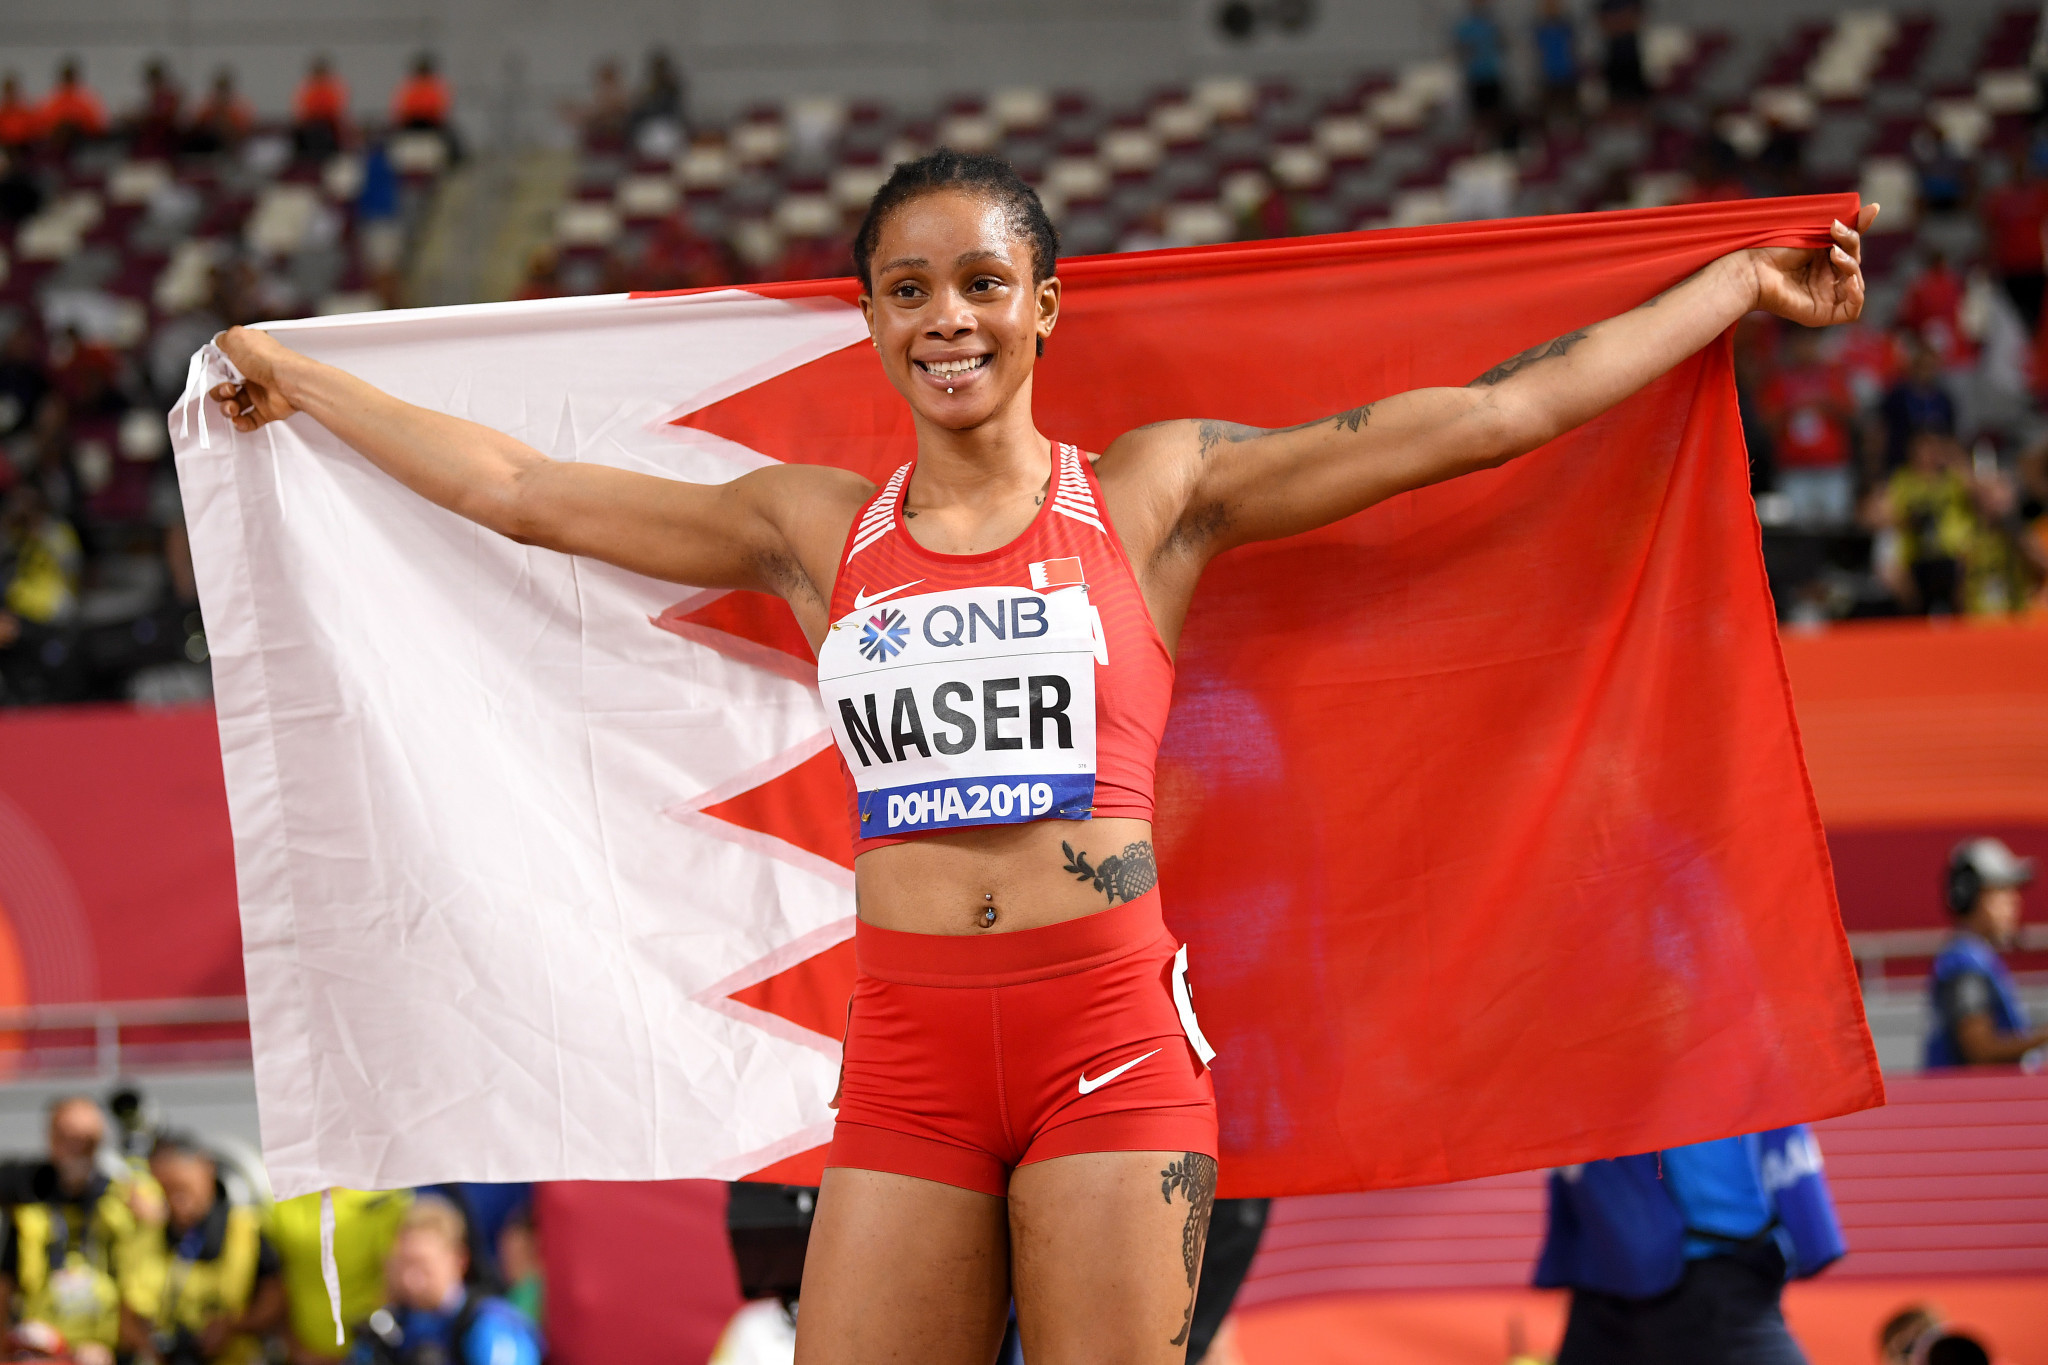 Salwa Eid Naser could be banned from this year's Tokyo 2020 Olympics for breaking anti-doping rules ©Getty Images